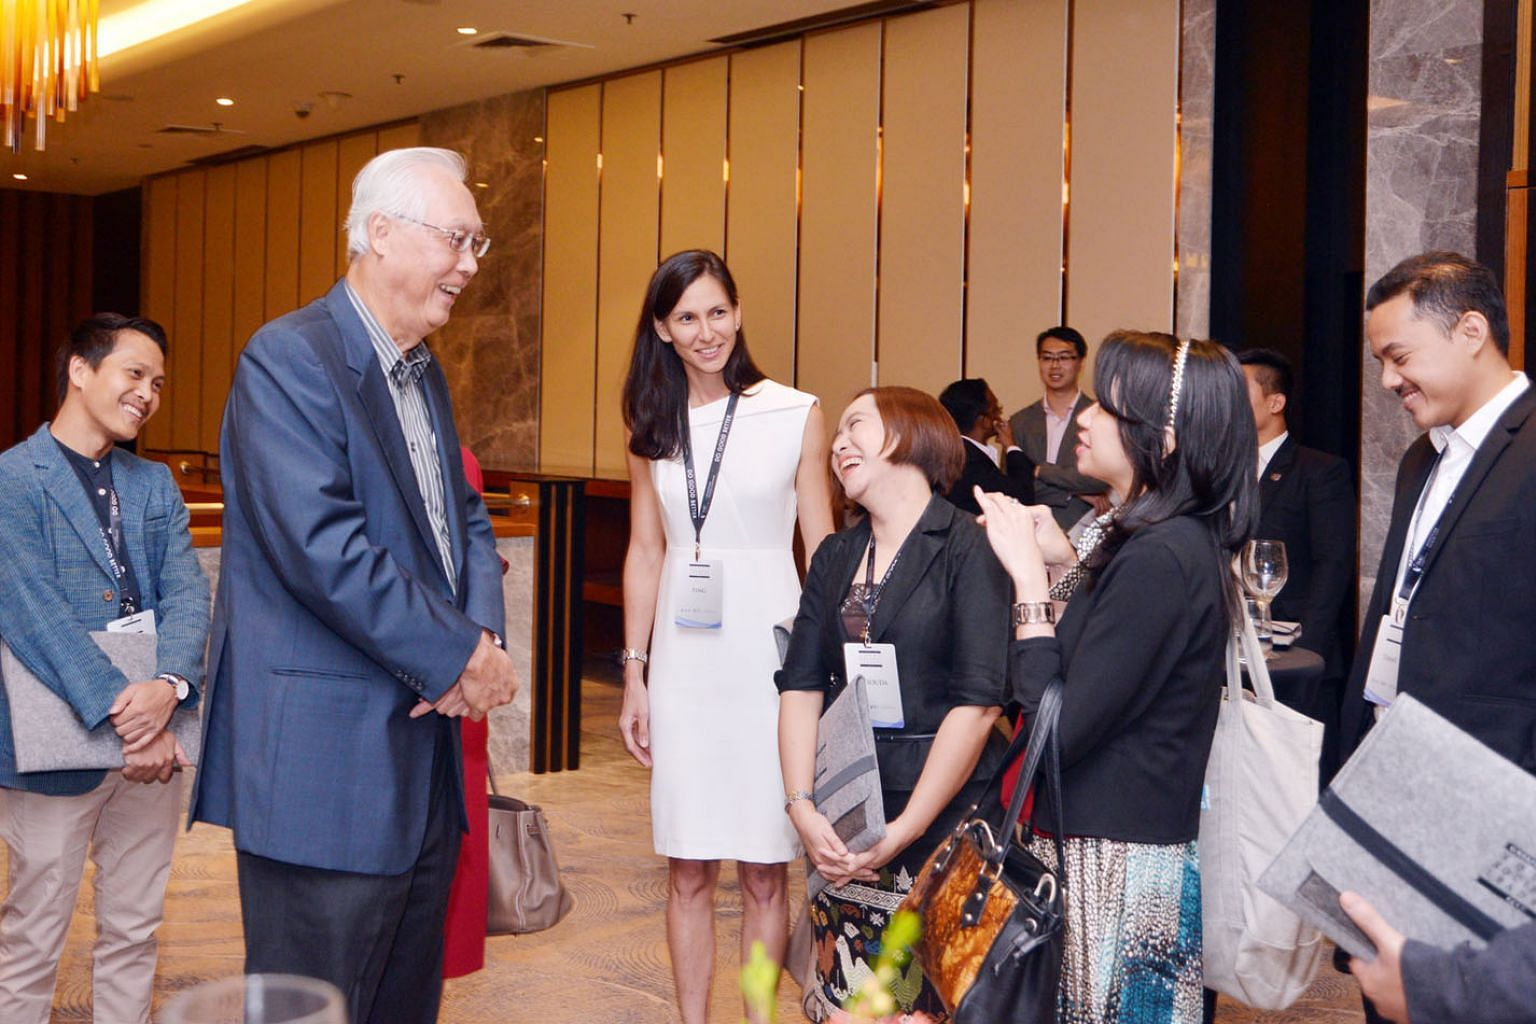 Emeritus Senior Minister Goh Chok Tong speaking with some participants of the inaugural Singapore Summit Young Societal Leaders Programme yesterday.